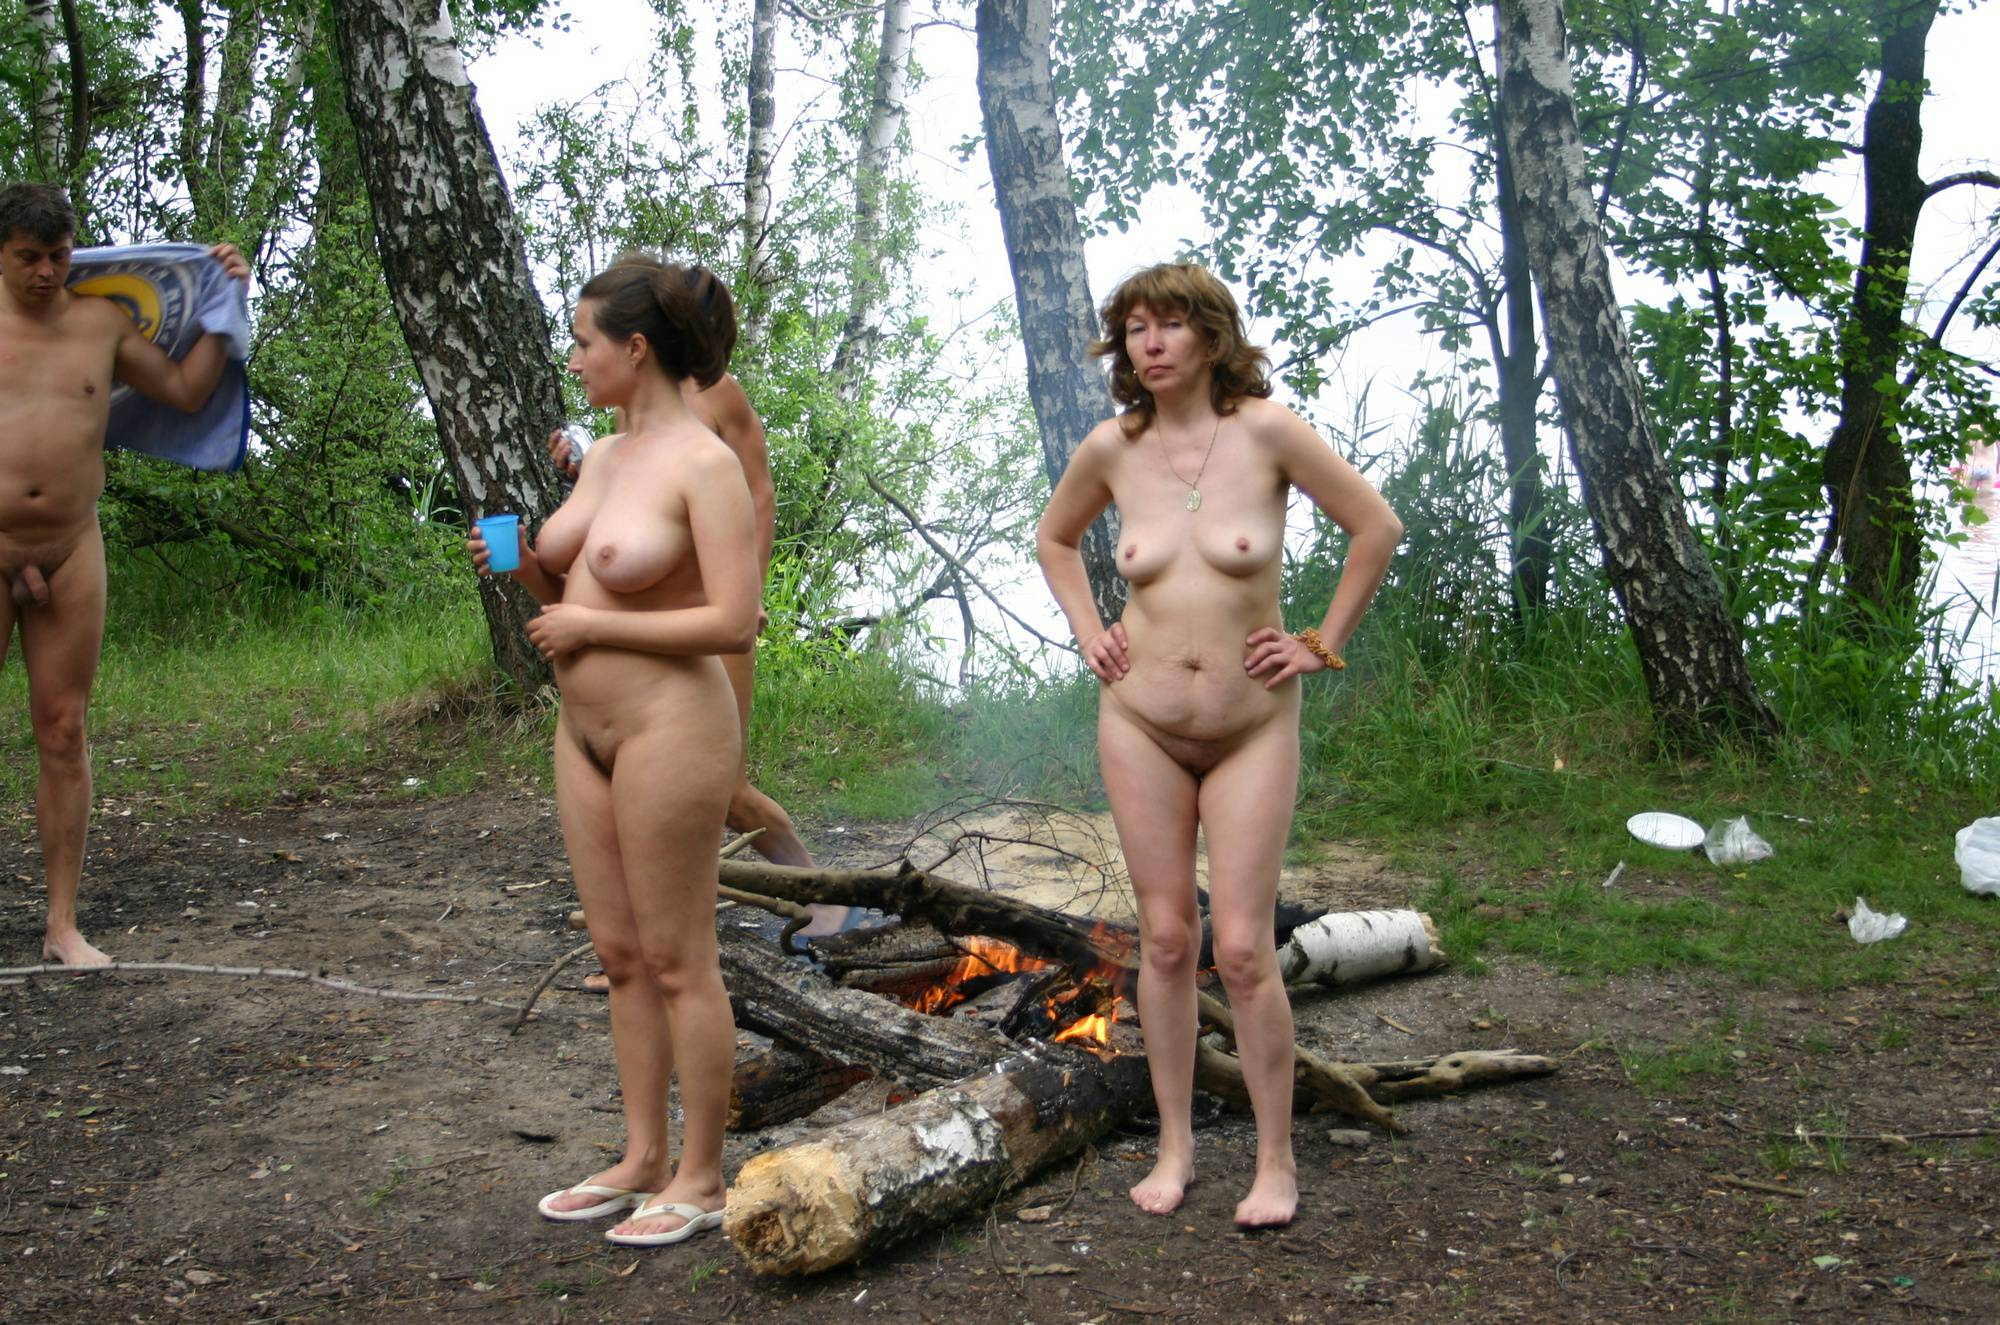 Nudist Pictures Dare to Be Bare Camping - 1